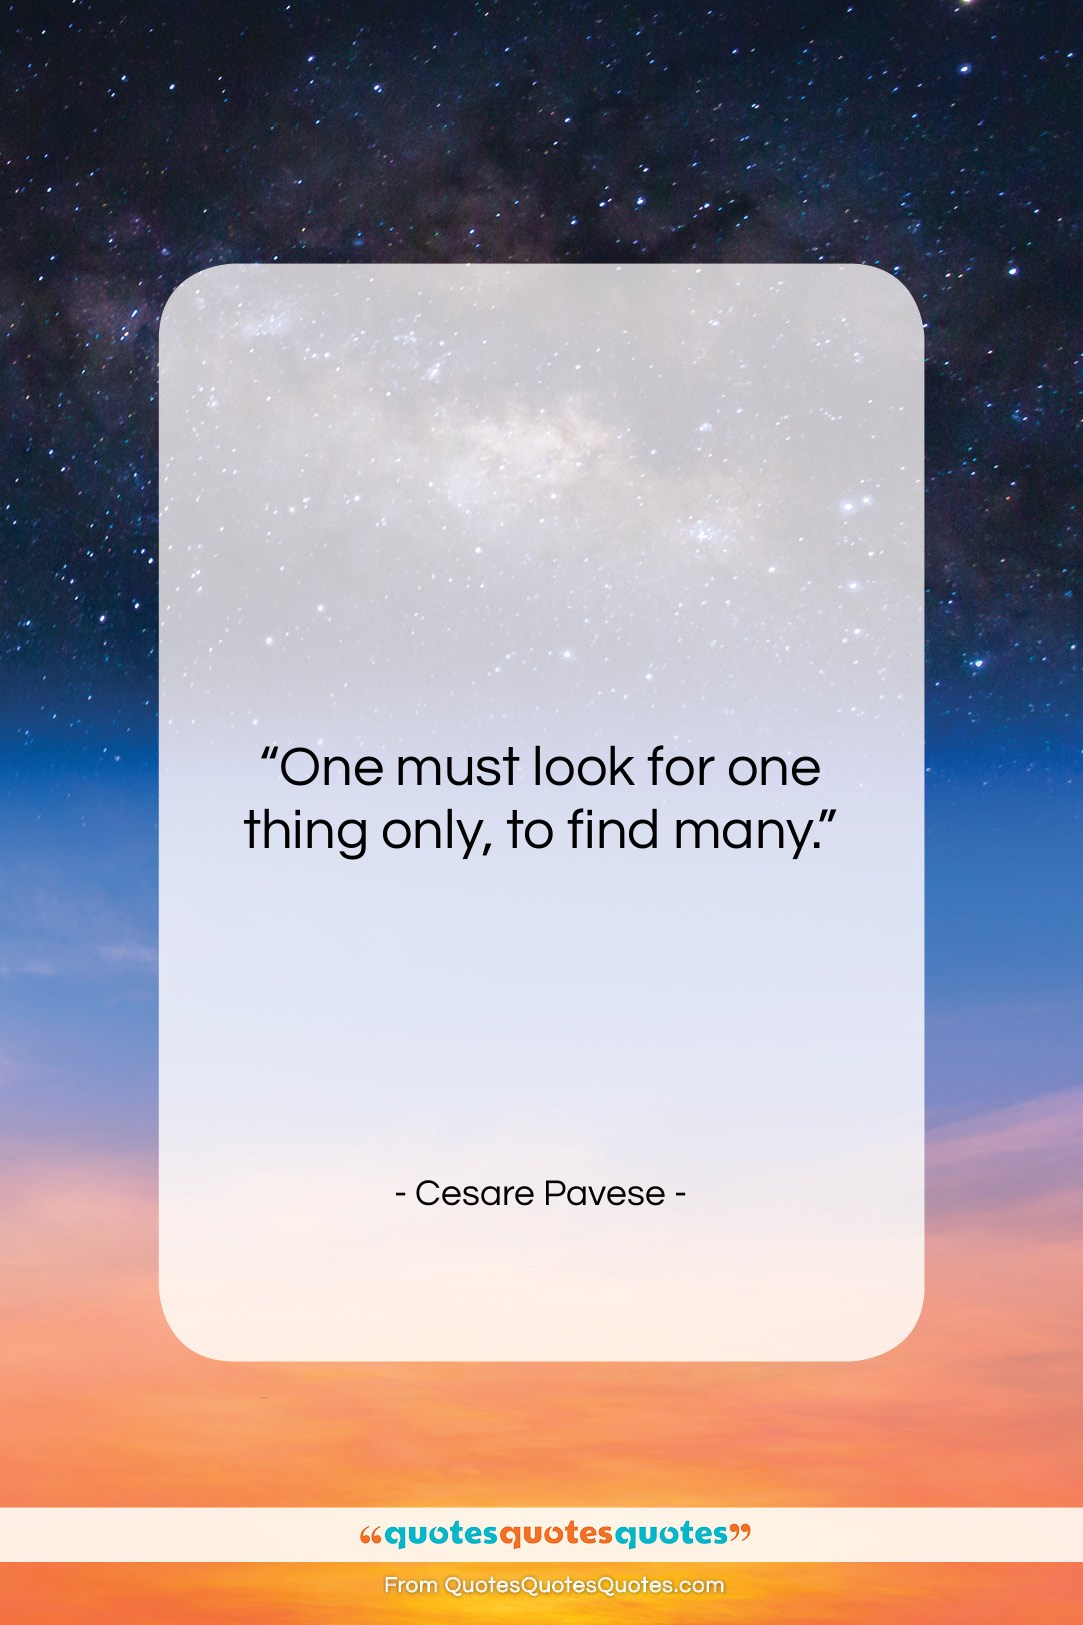 """Cesare Pavese quote: """"One must look for one thing only,…""""- at QuotesQuotesQuotes.com"""